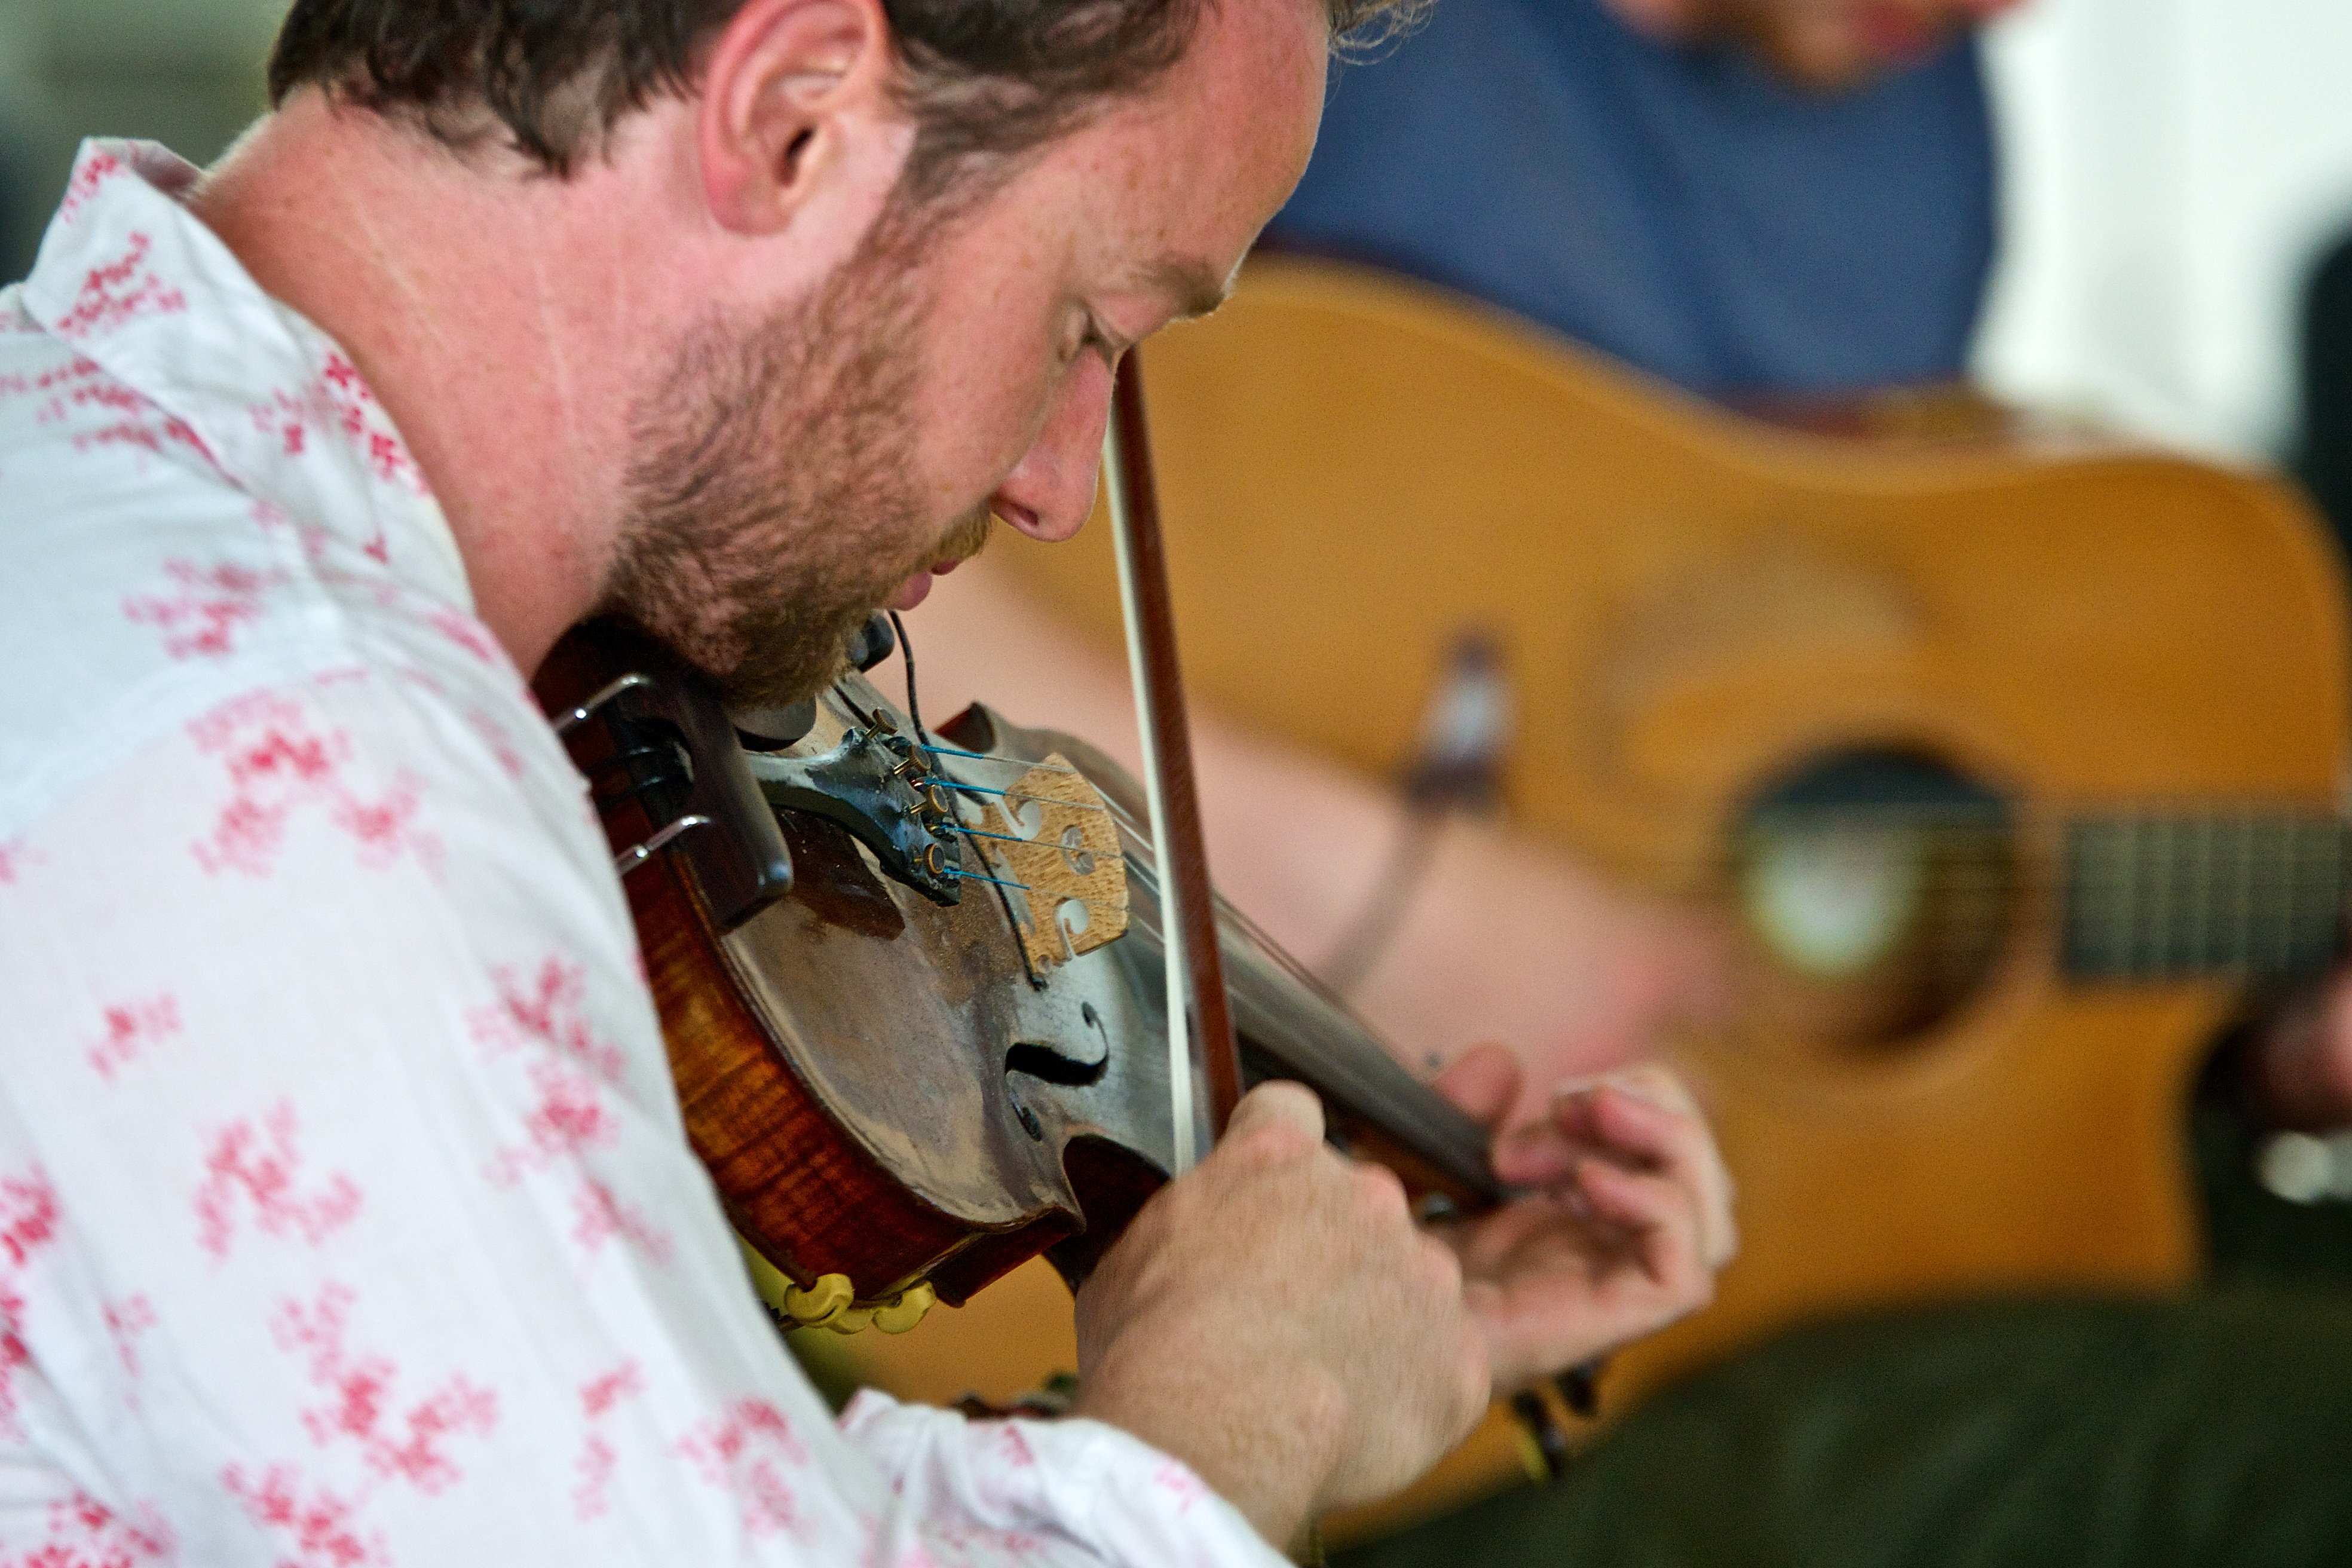 We Banjo 3 @ Ceol na Coille Summer School 2014